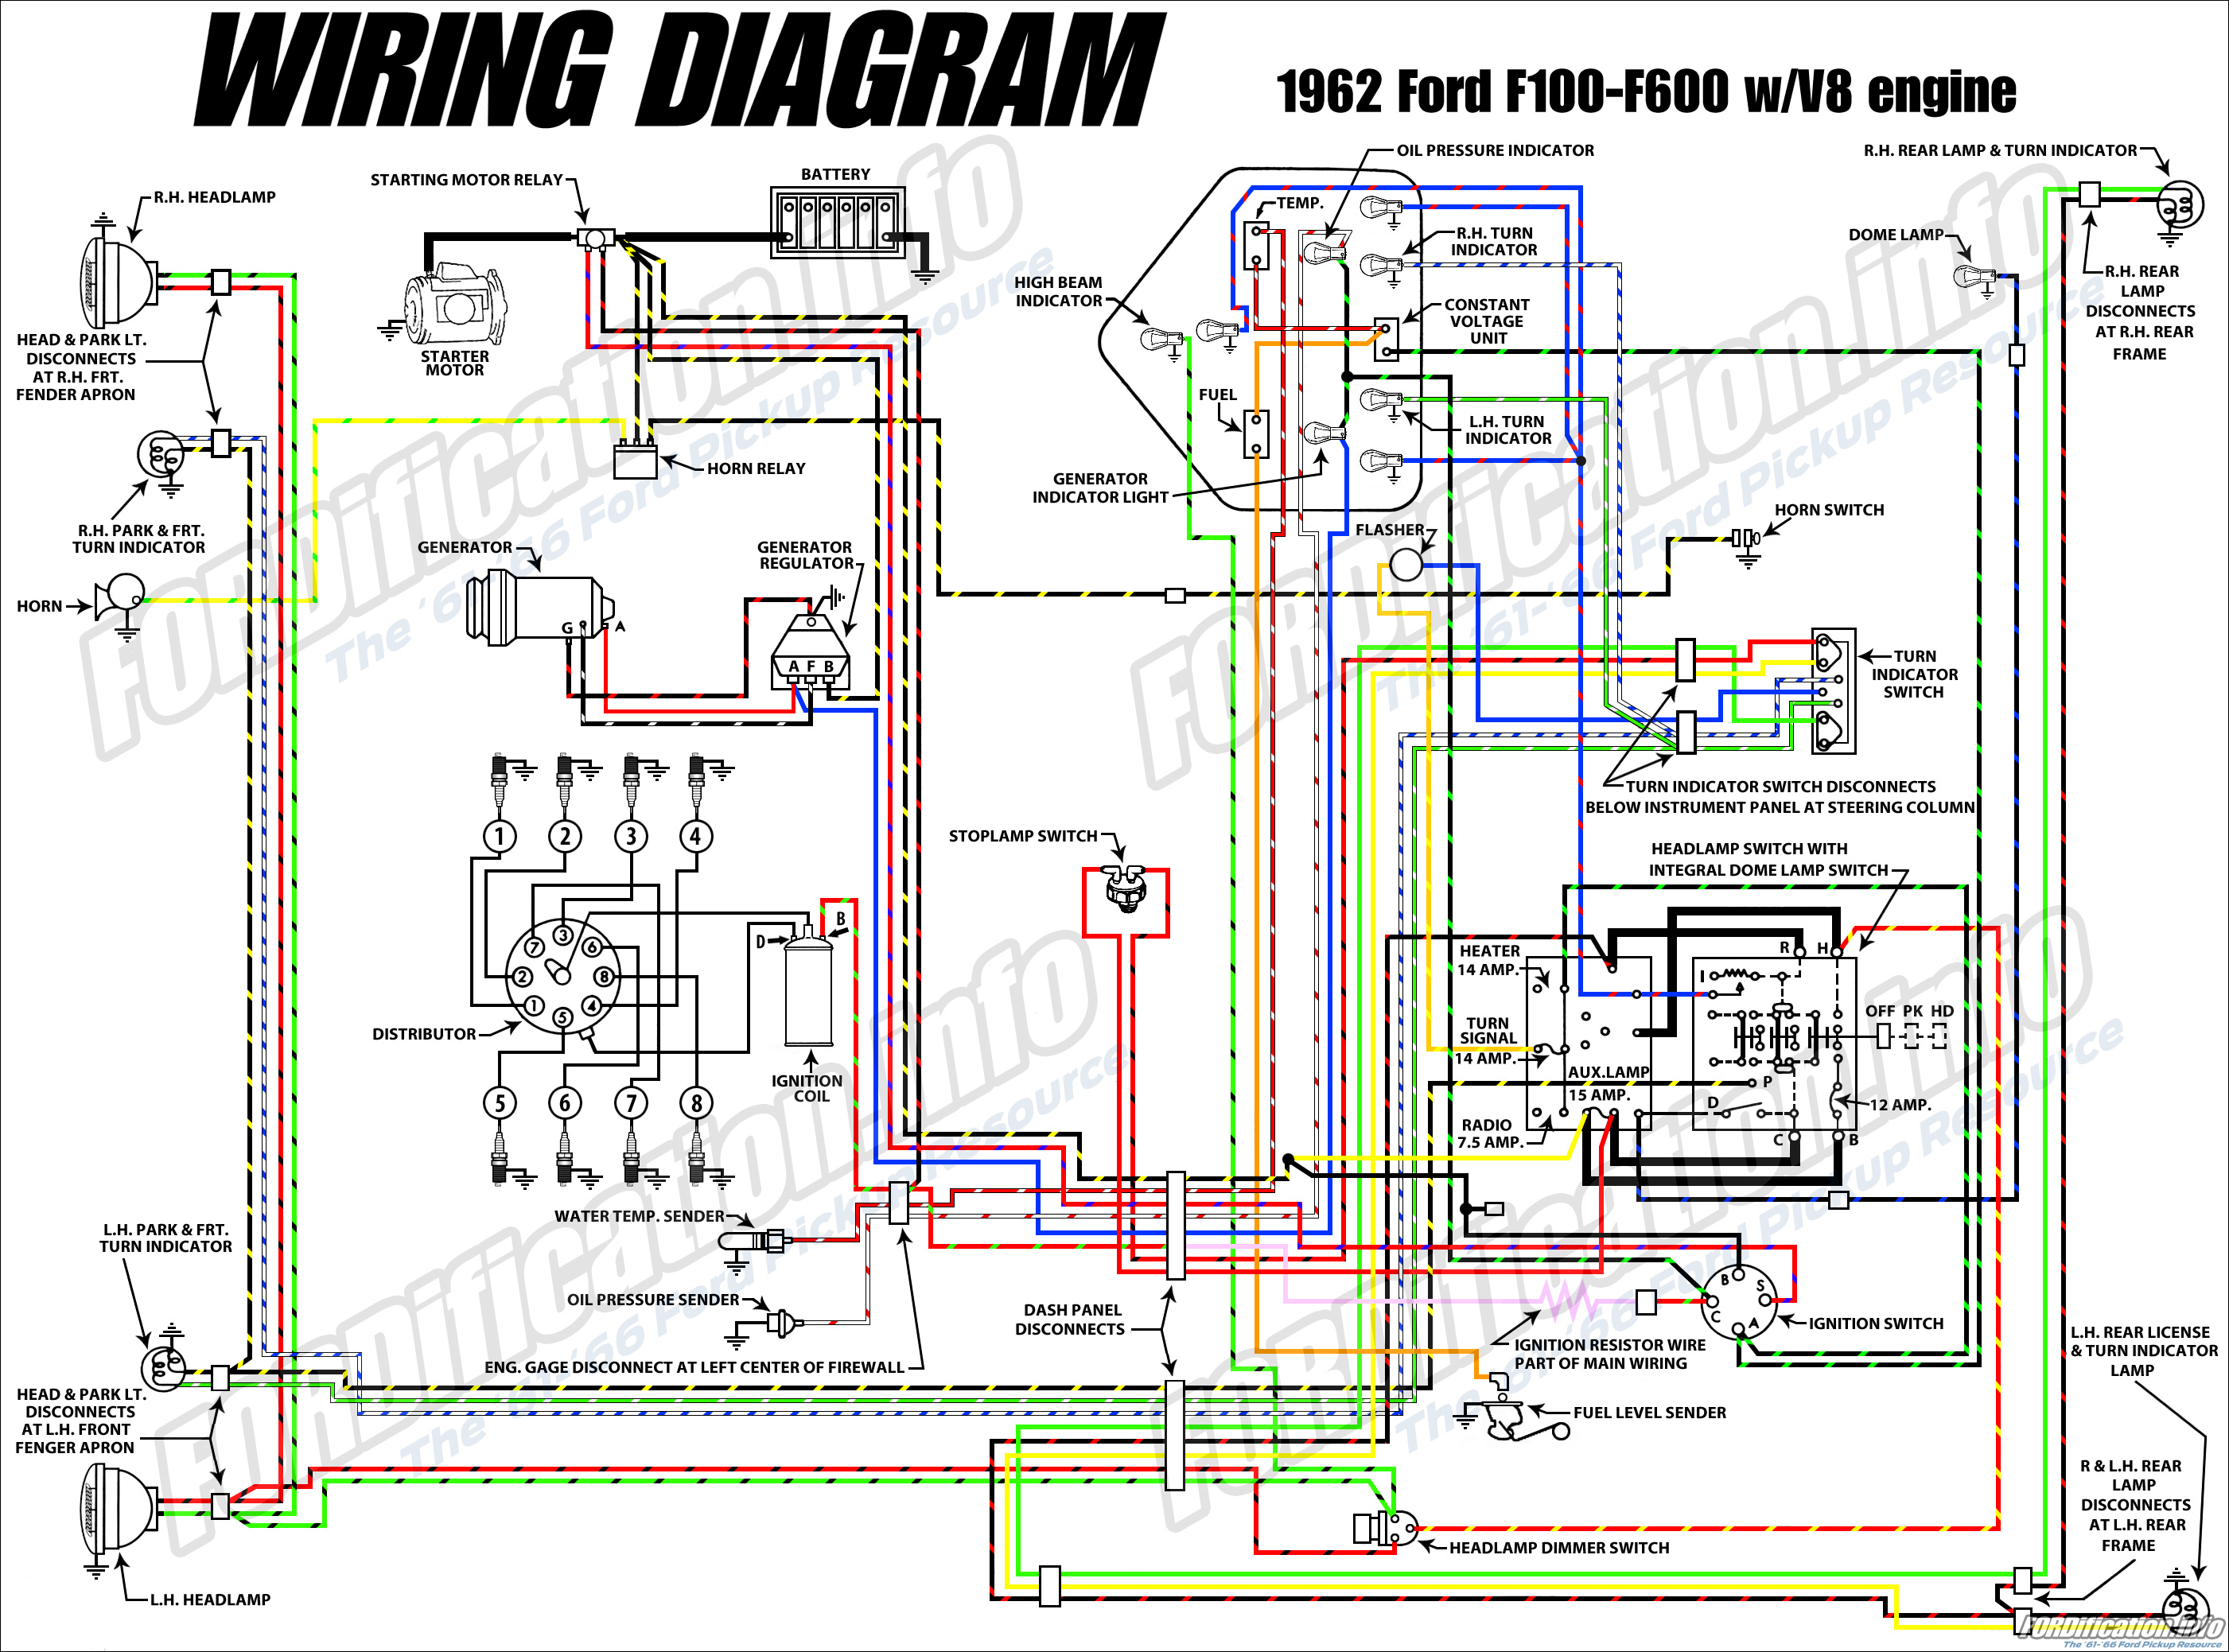 1989 Ford Headlight Switch Wiring Diagram Custom 1993 Explorer 1985 Dodge Ram Enthusiast Rh Rasalibre Co